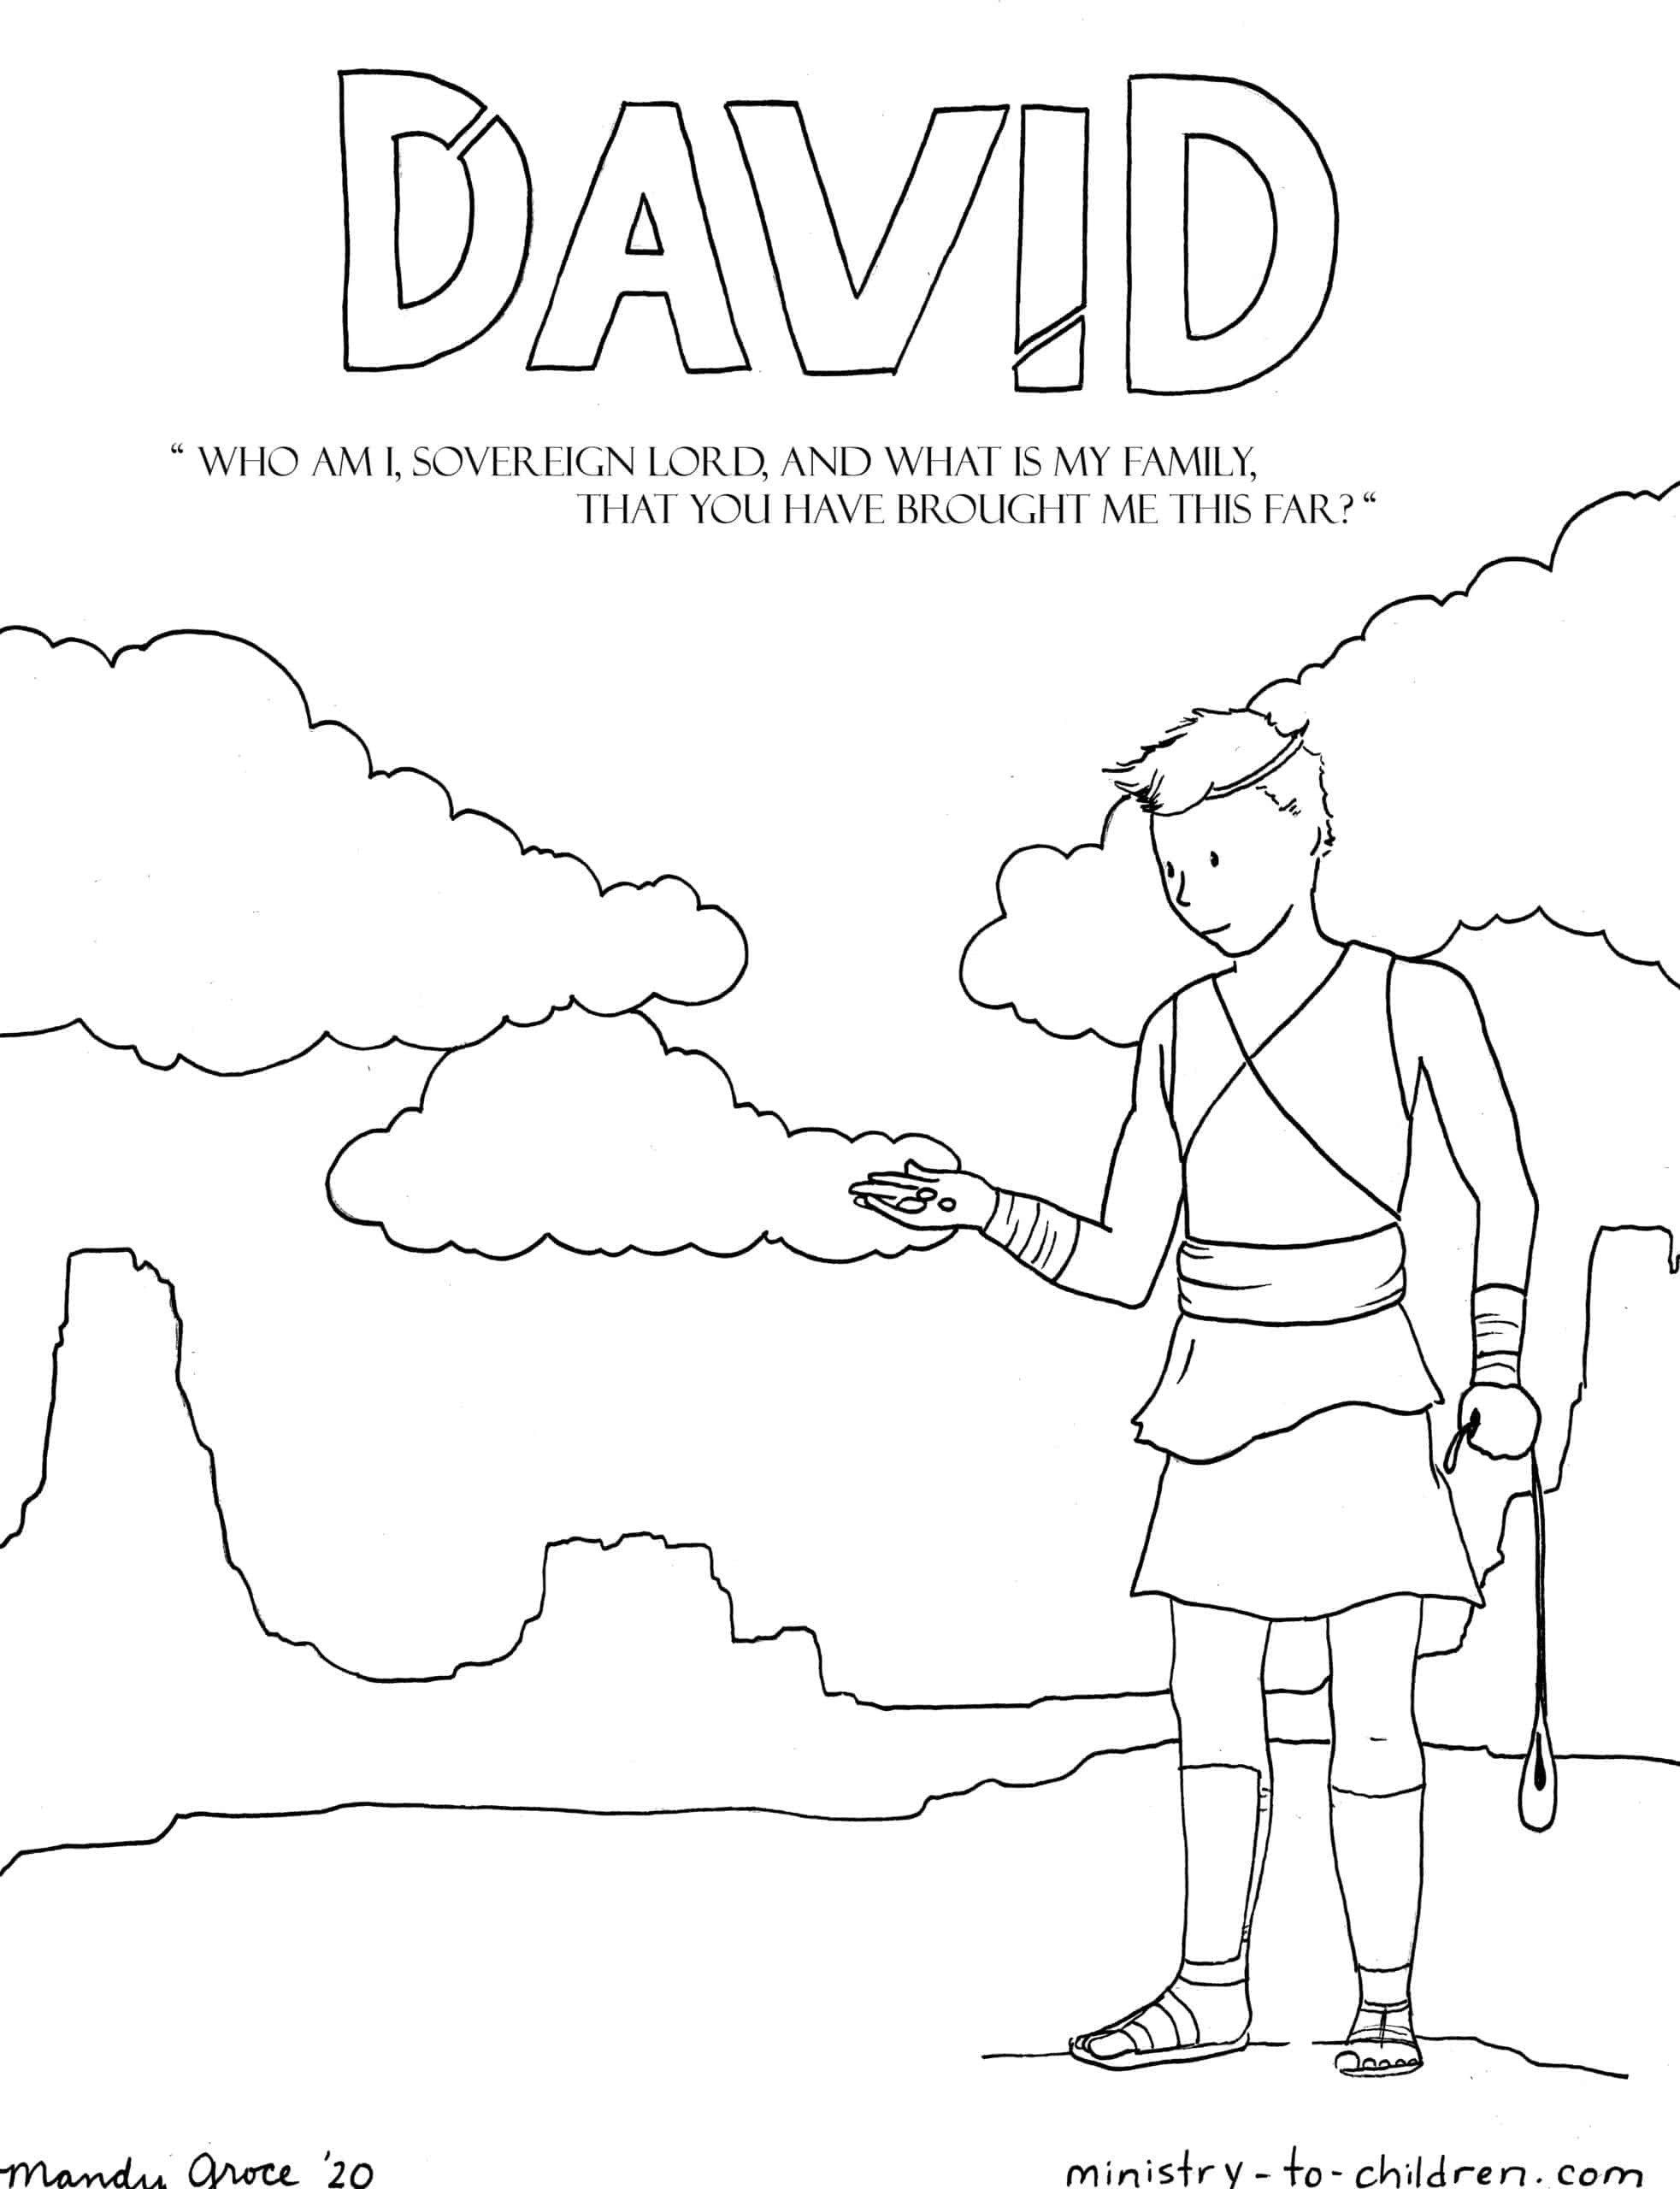 King David Coloring Page David Coloring Page Free Children S Ministry Resources In 2020 Coloring Pages Bible Coloring Pages Flag Coloring Pages